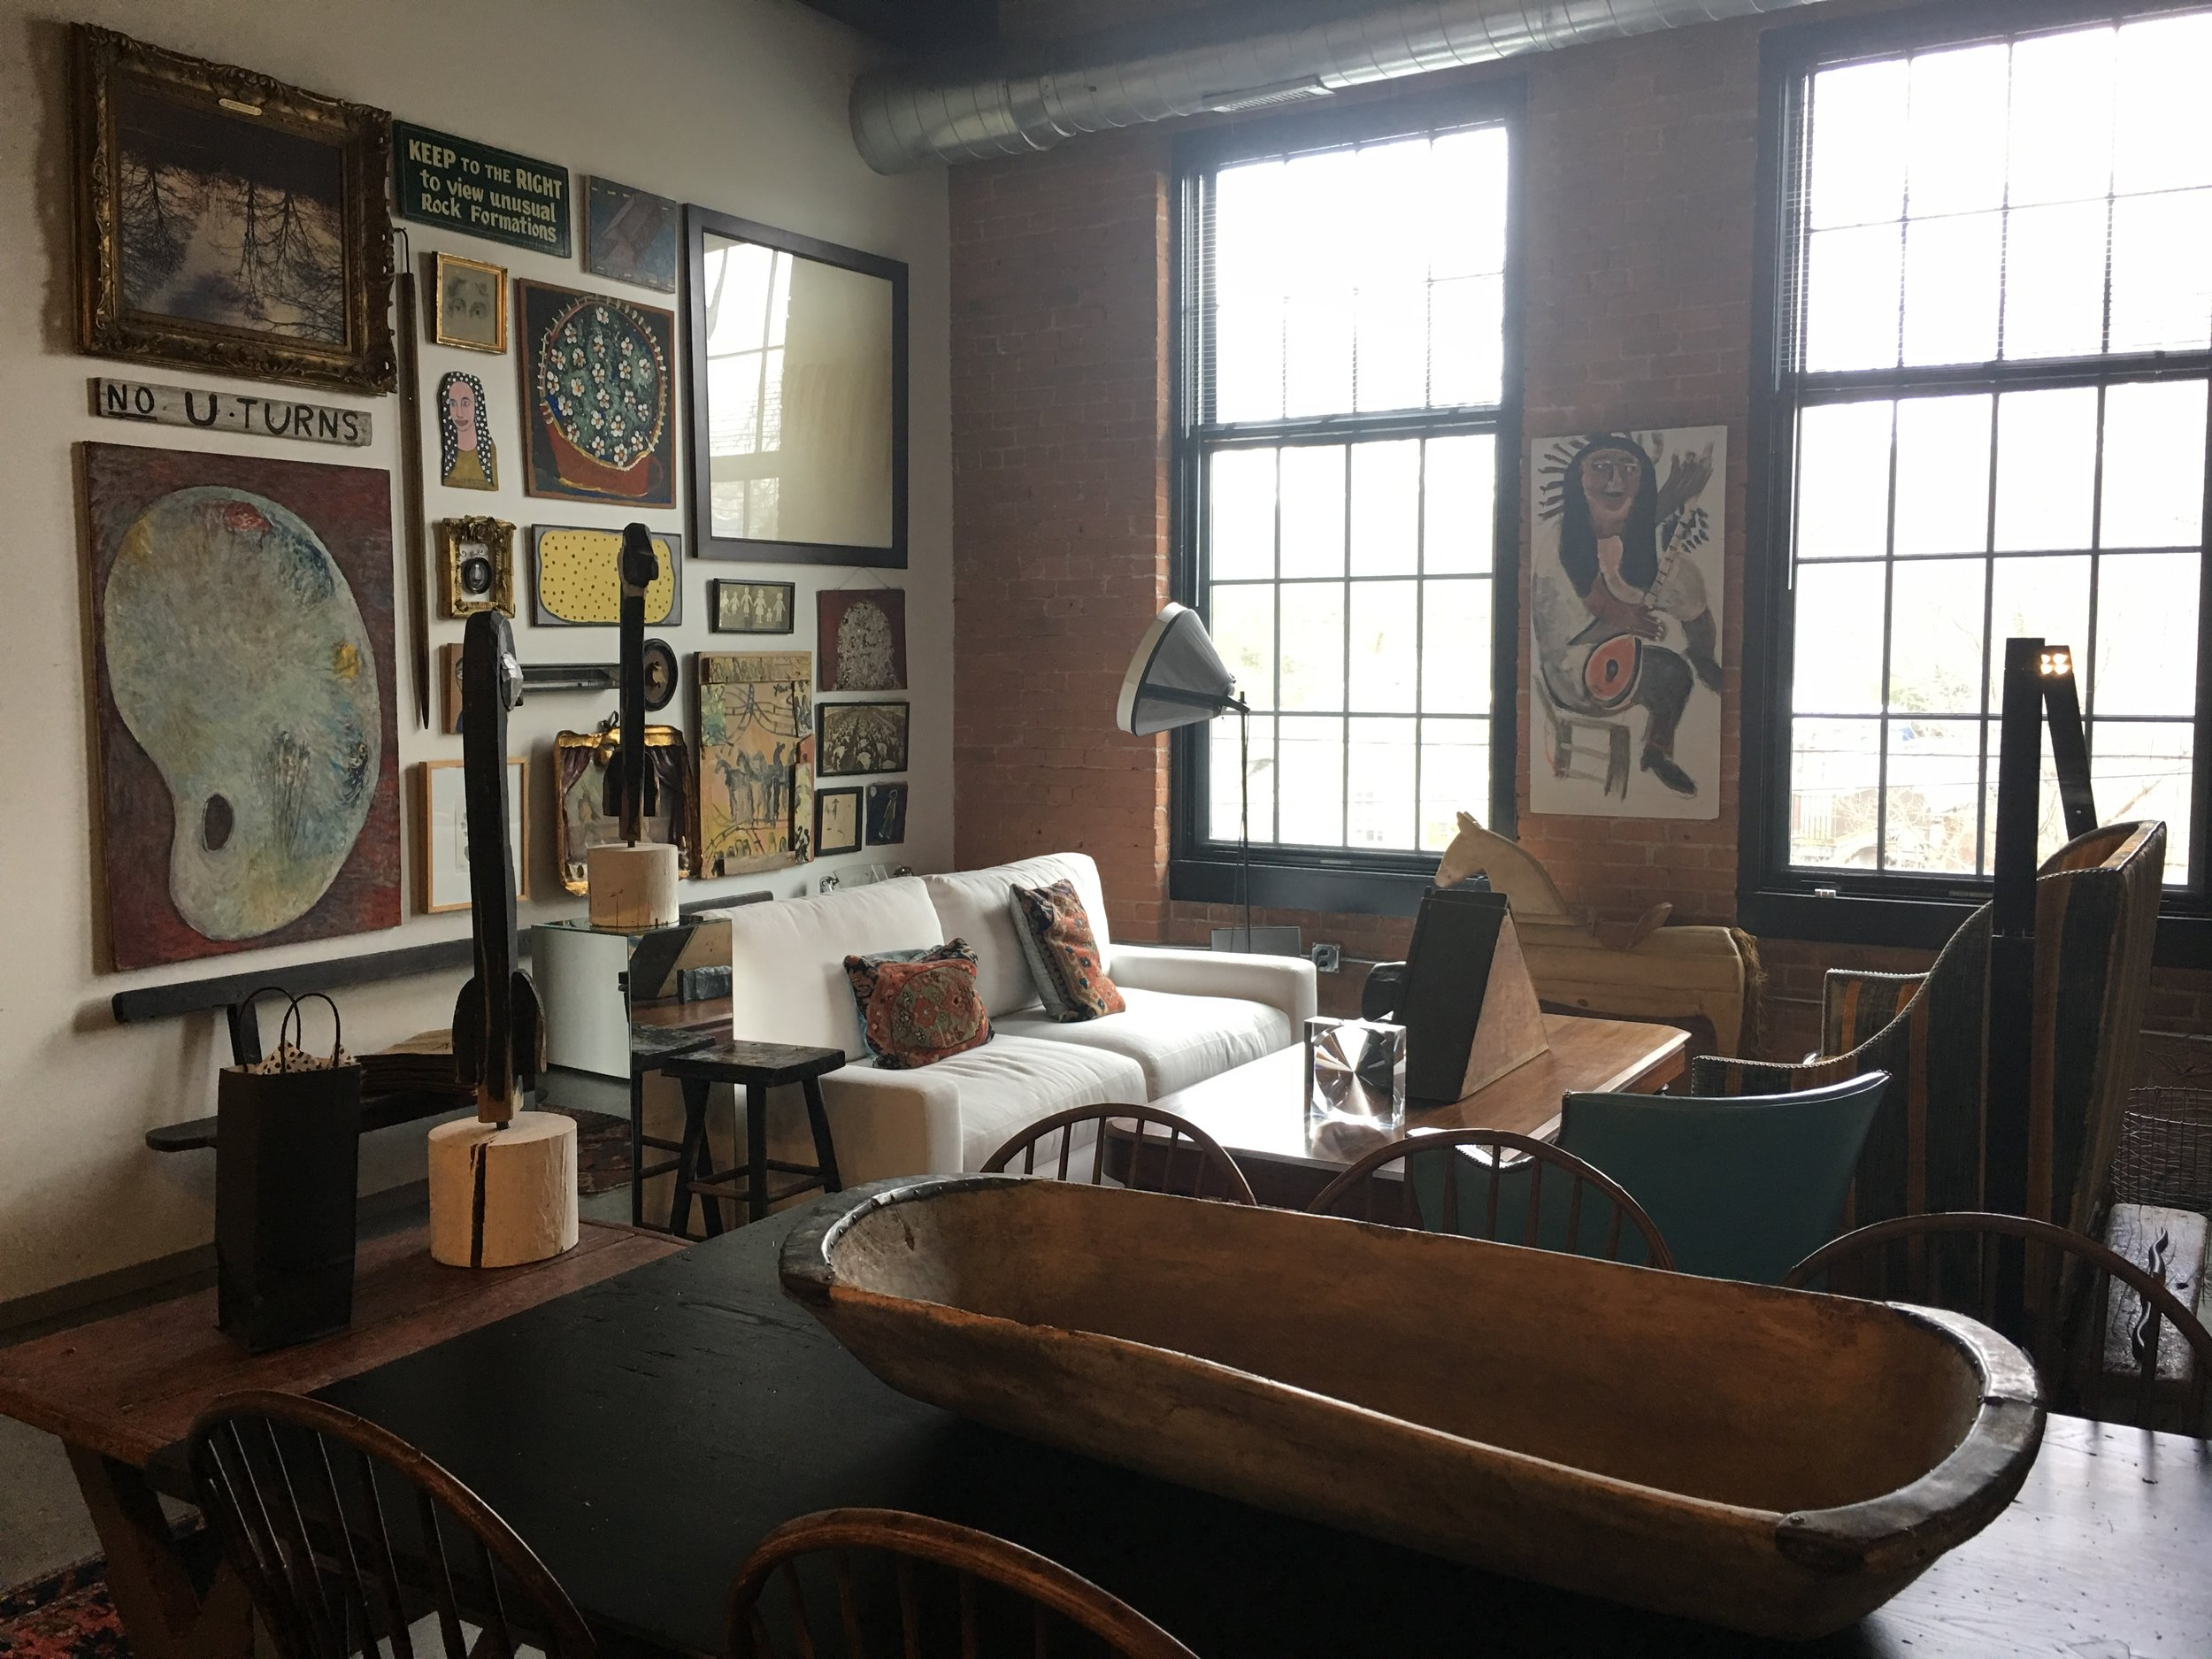 The high ceilings and brick walls lend themselves to the perfect space for Corrine to display her amazing art collection.